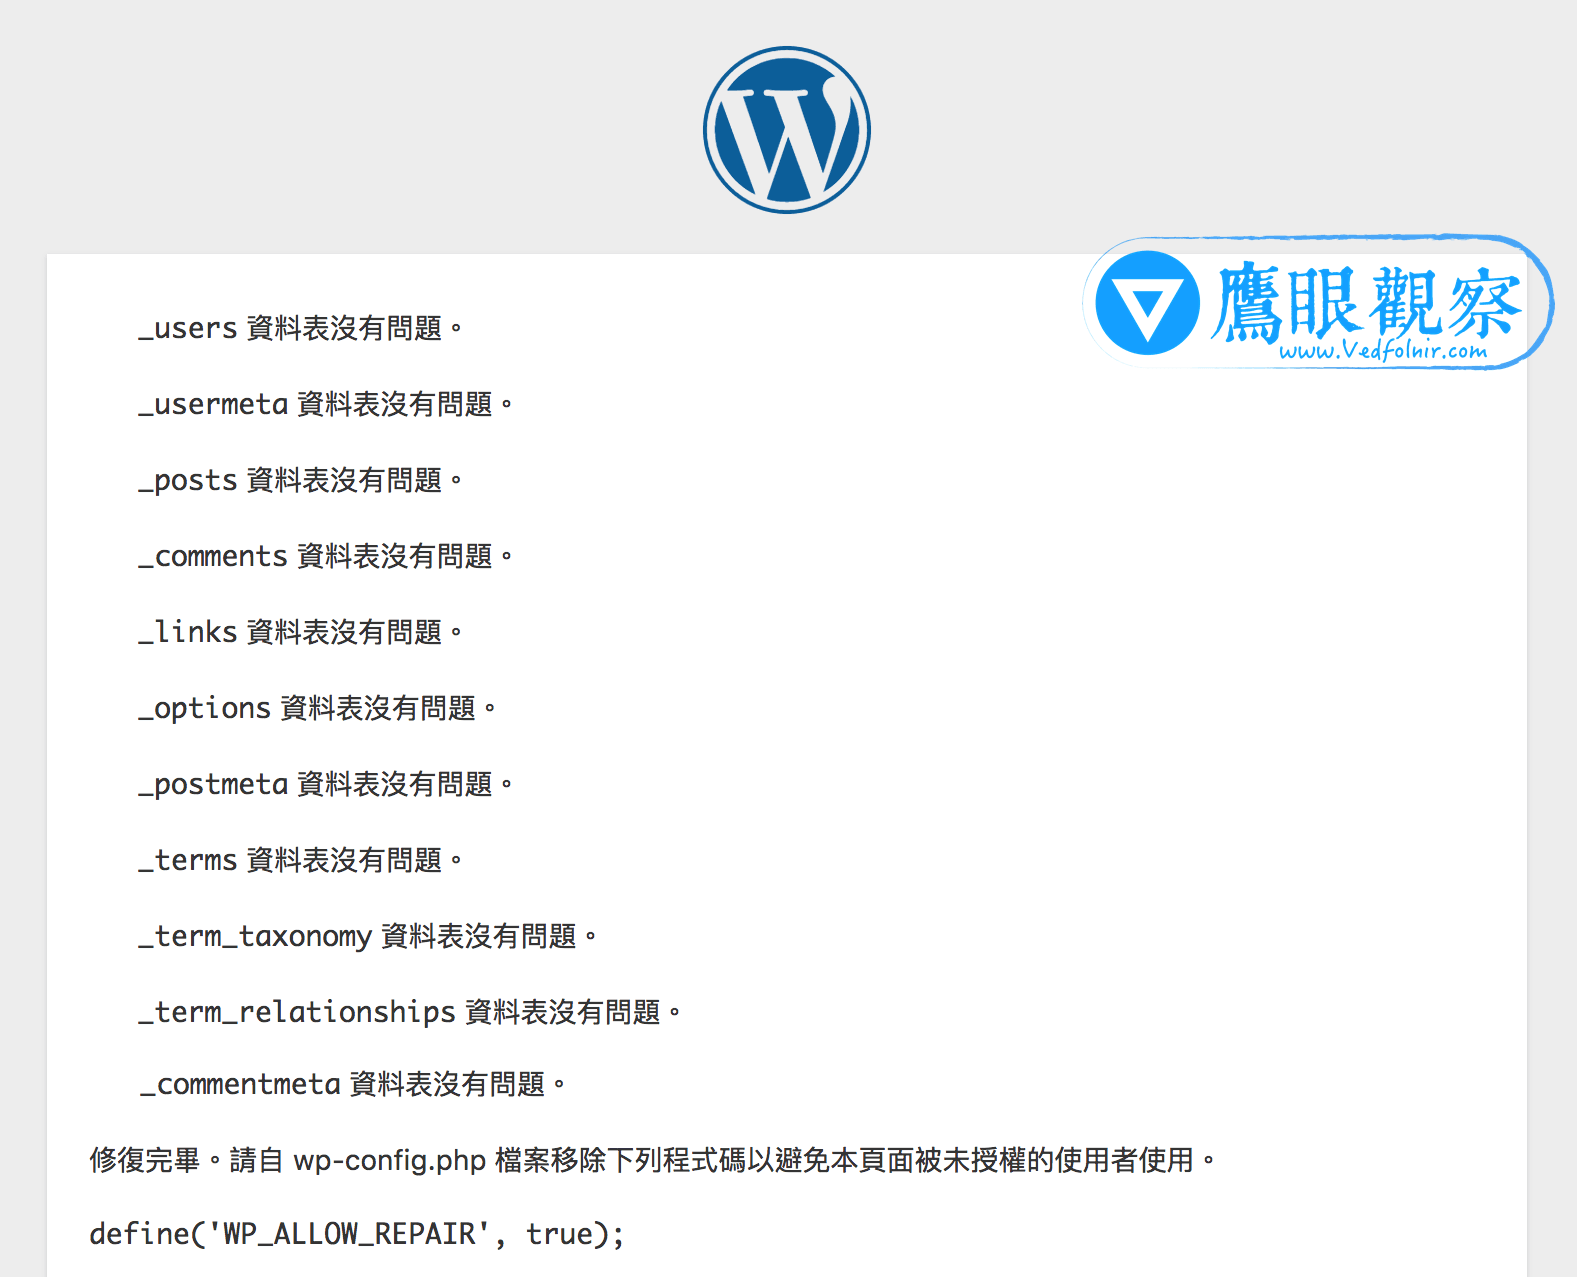 WordPress Database Auto Repair Processing WordPress教學:免裝外掛也能修復 MySQL 資料庫和自動最佳化整理